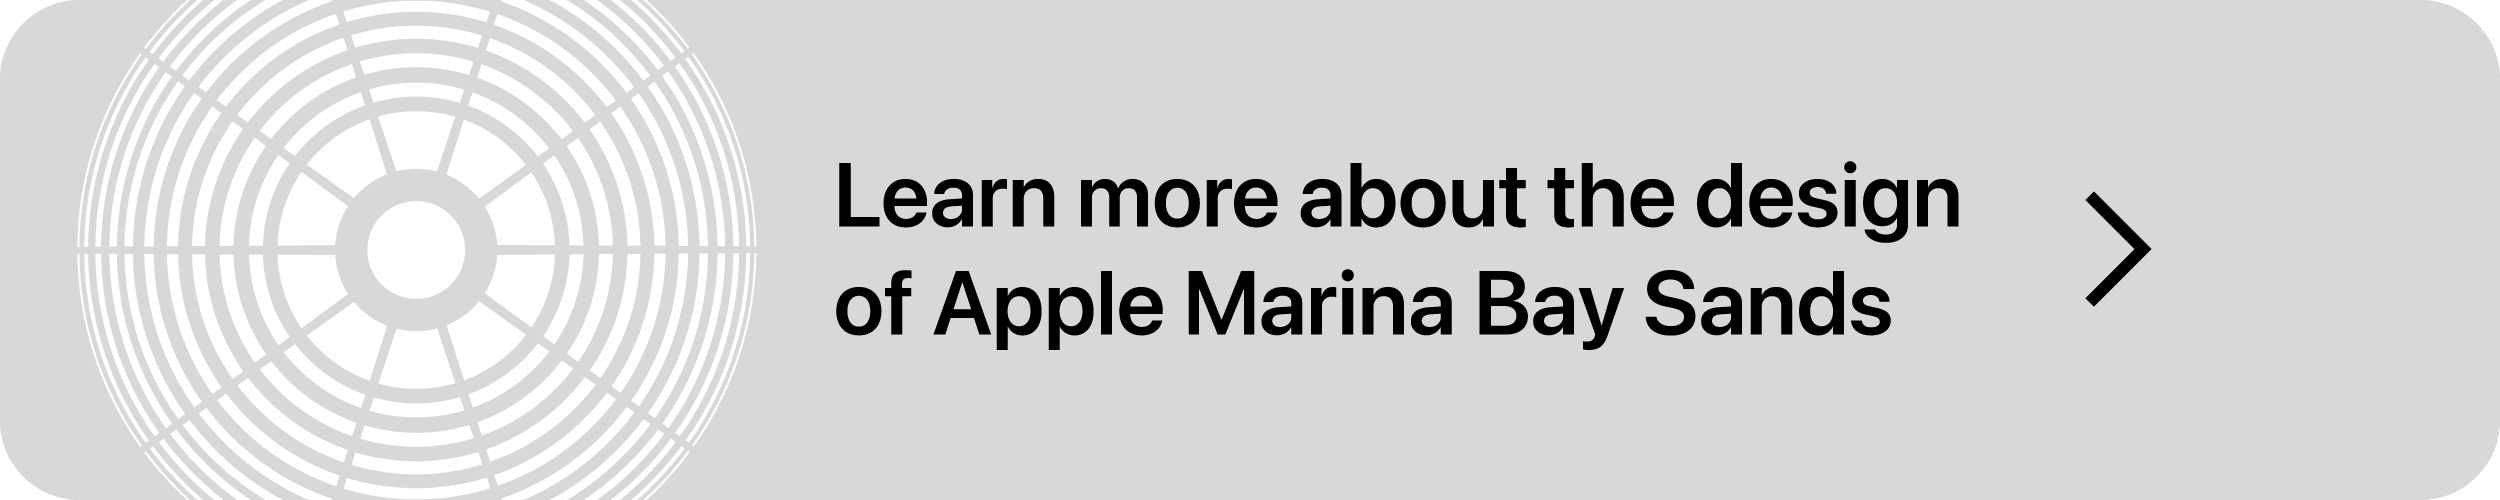 Click here to learn more about the design of Apple Marina Bay Sands